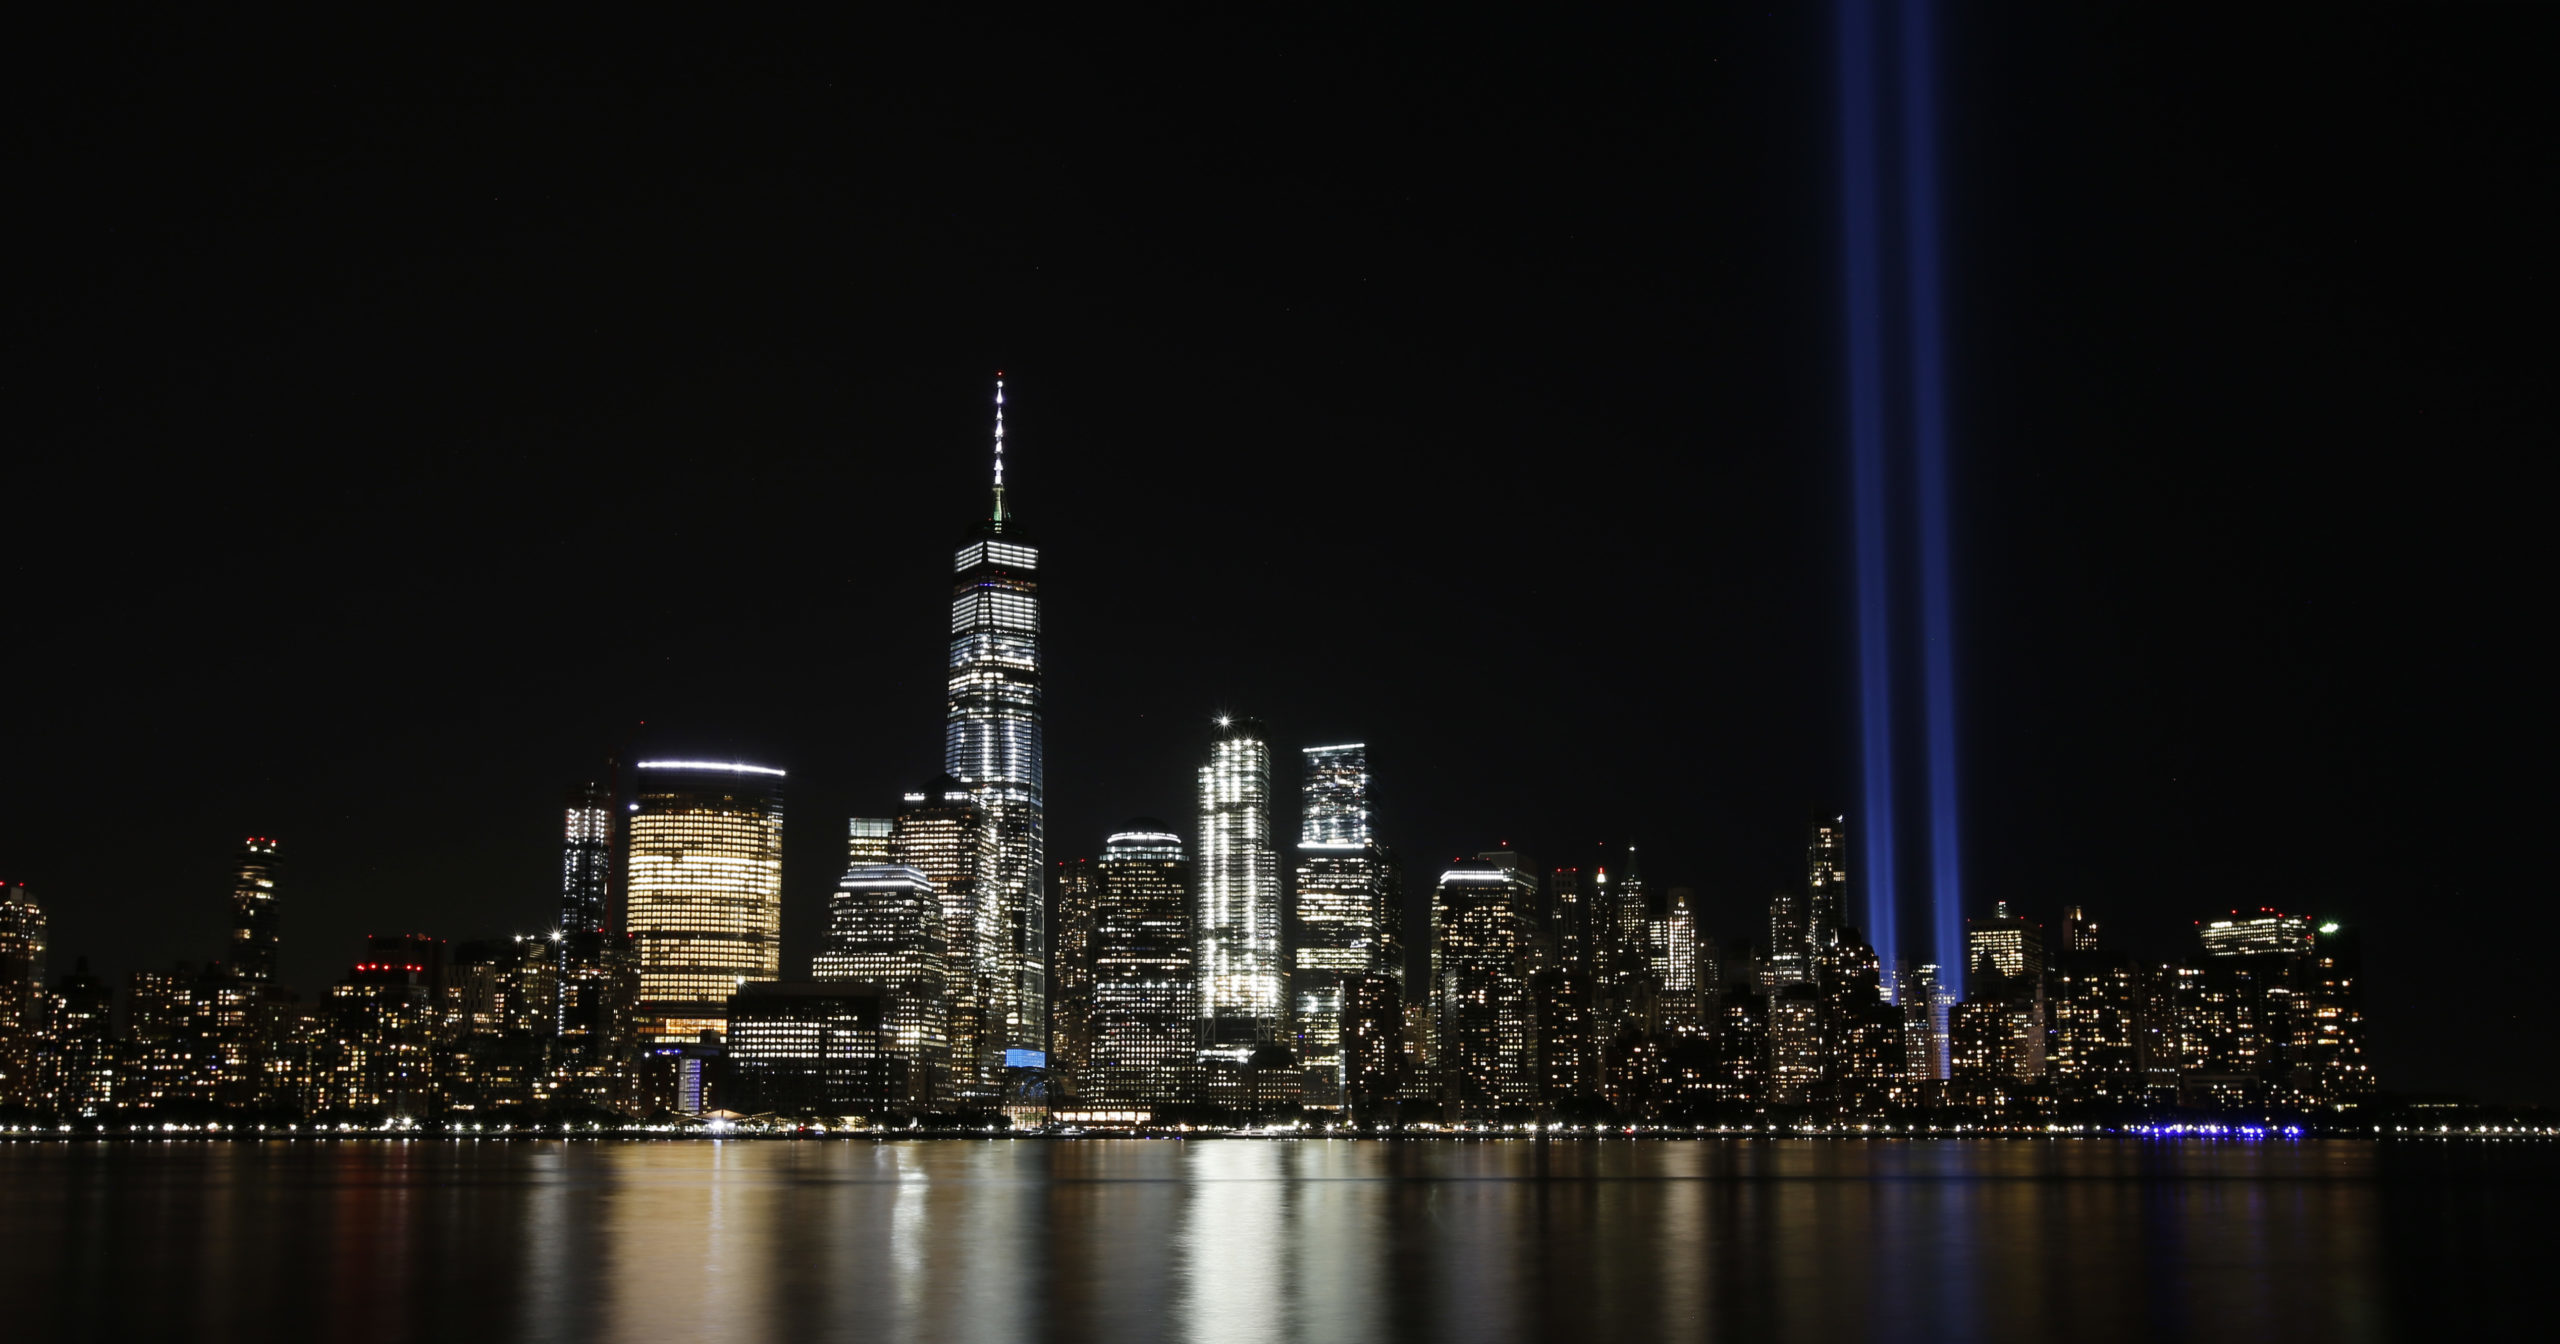 In this Sept. 11, 2017, file photo, the Tribute in Light illuminates the sky above the Lower Manhattan area of New York. The 9/11 terror attacks' 19th anniversary will be marked on Sept. 11, 2020, by dueling ceremonies at the Sept. 11 Memorial Plaza and a corner nearby in New York.